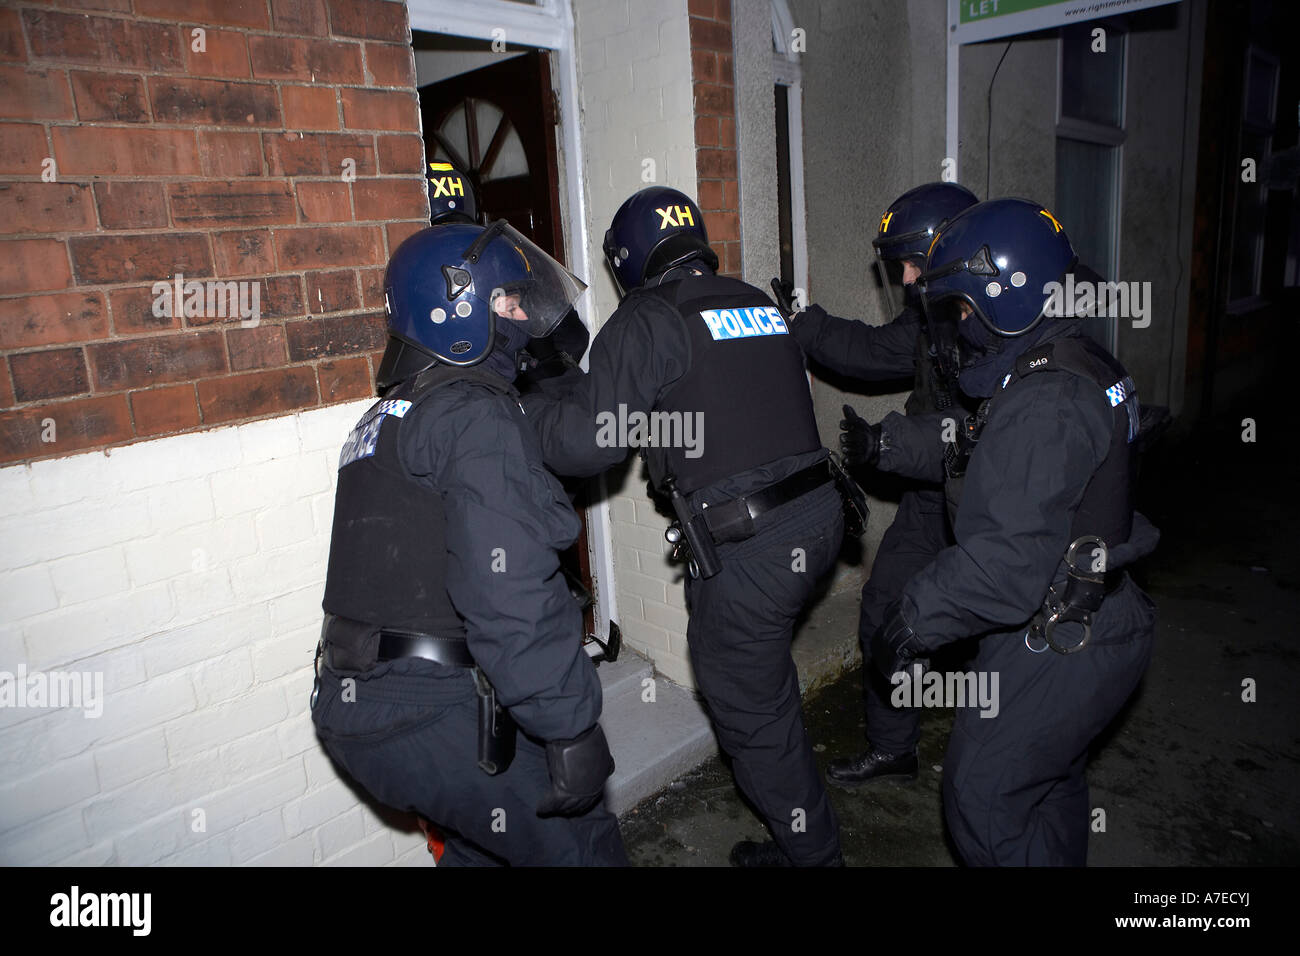 Police enter a house after breaking down a front door during a dawn raid on suspected drugs dealers in Hull East Yorkshire & Police enter a house after breaking down a front door during a dawn ...